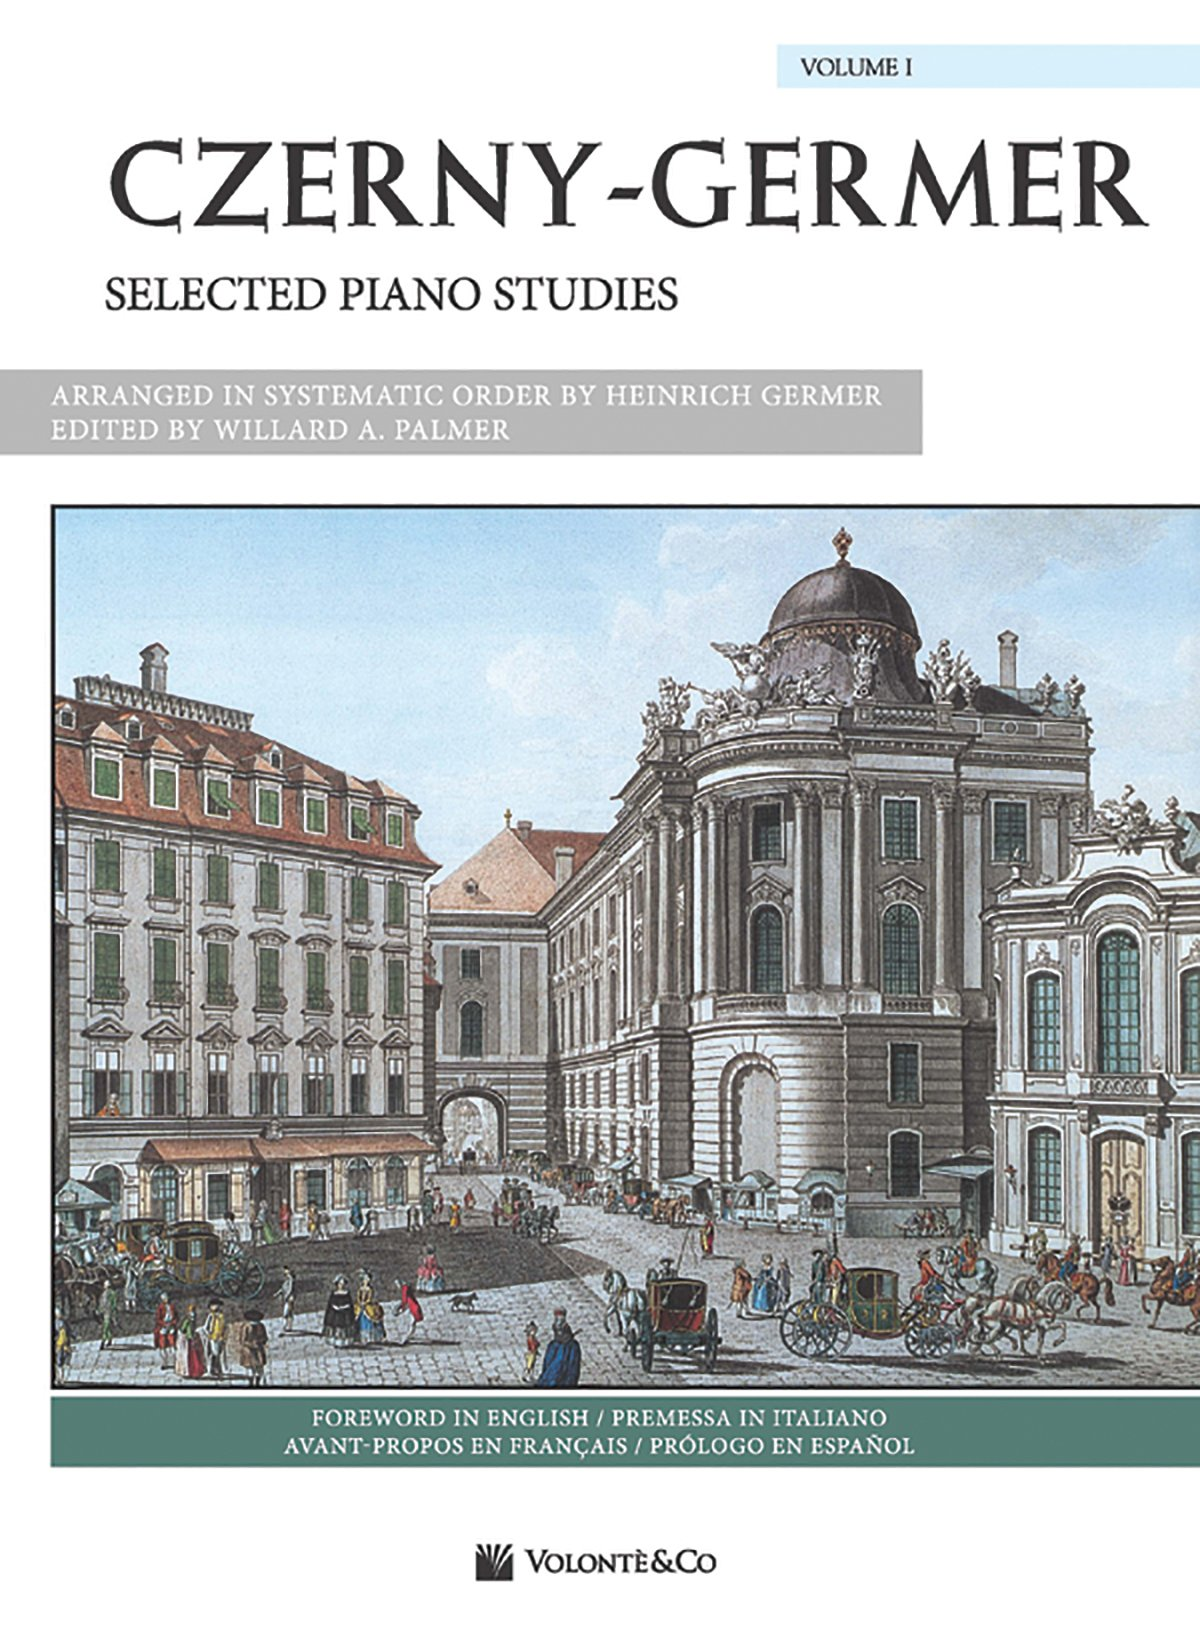 Czerny-Germer -- Selected Piano Studies, Vol 1: Spanish / French / Italian Language Edition (Volonte Masterwork Edition) (French Edition) by Alfred Music